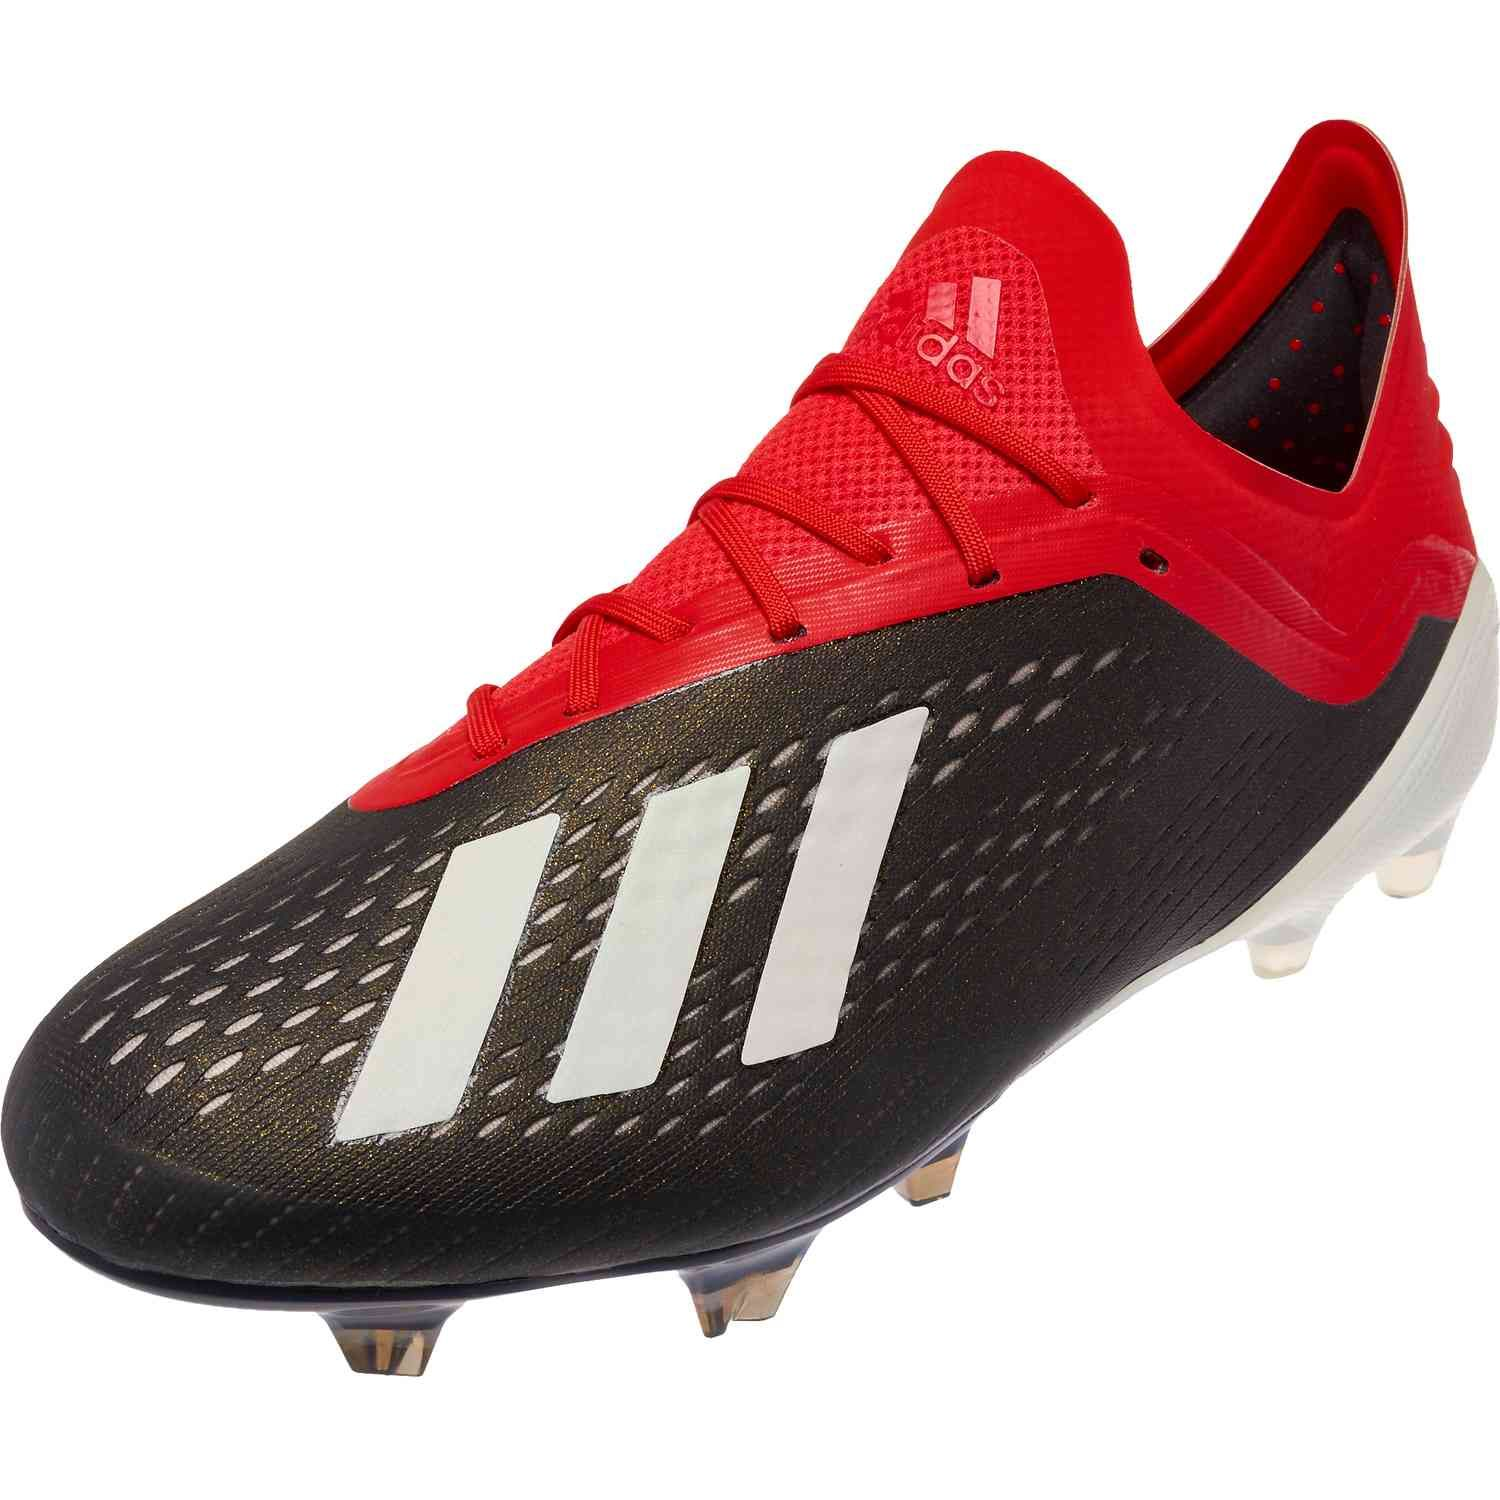 competitive price f95cb f8b68 ... football boots e8cad 9564a  shopping buy the always forward adidas x  18.1 fg soccer cleats from soccerpro. 6d06b de0ea